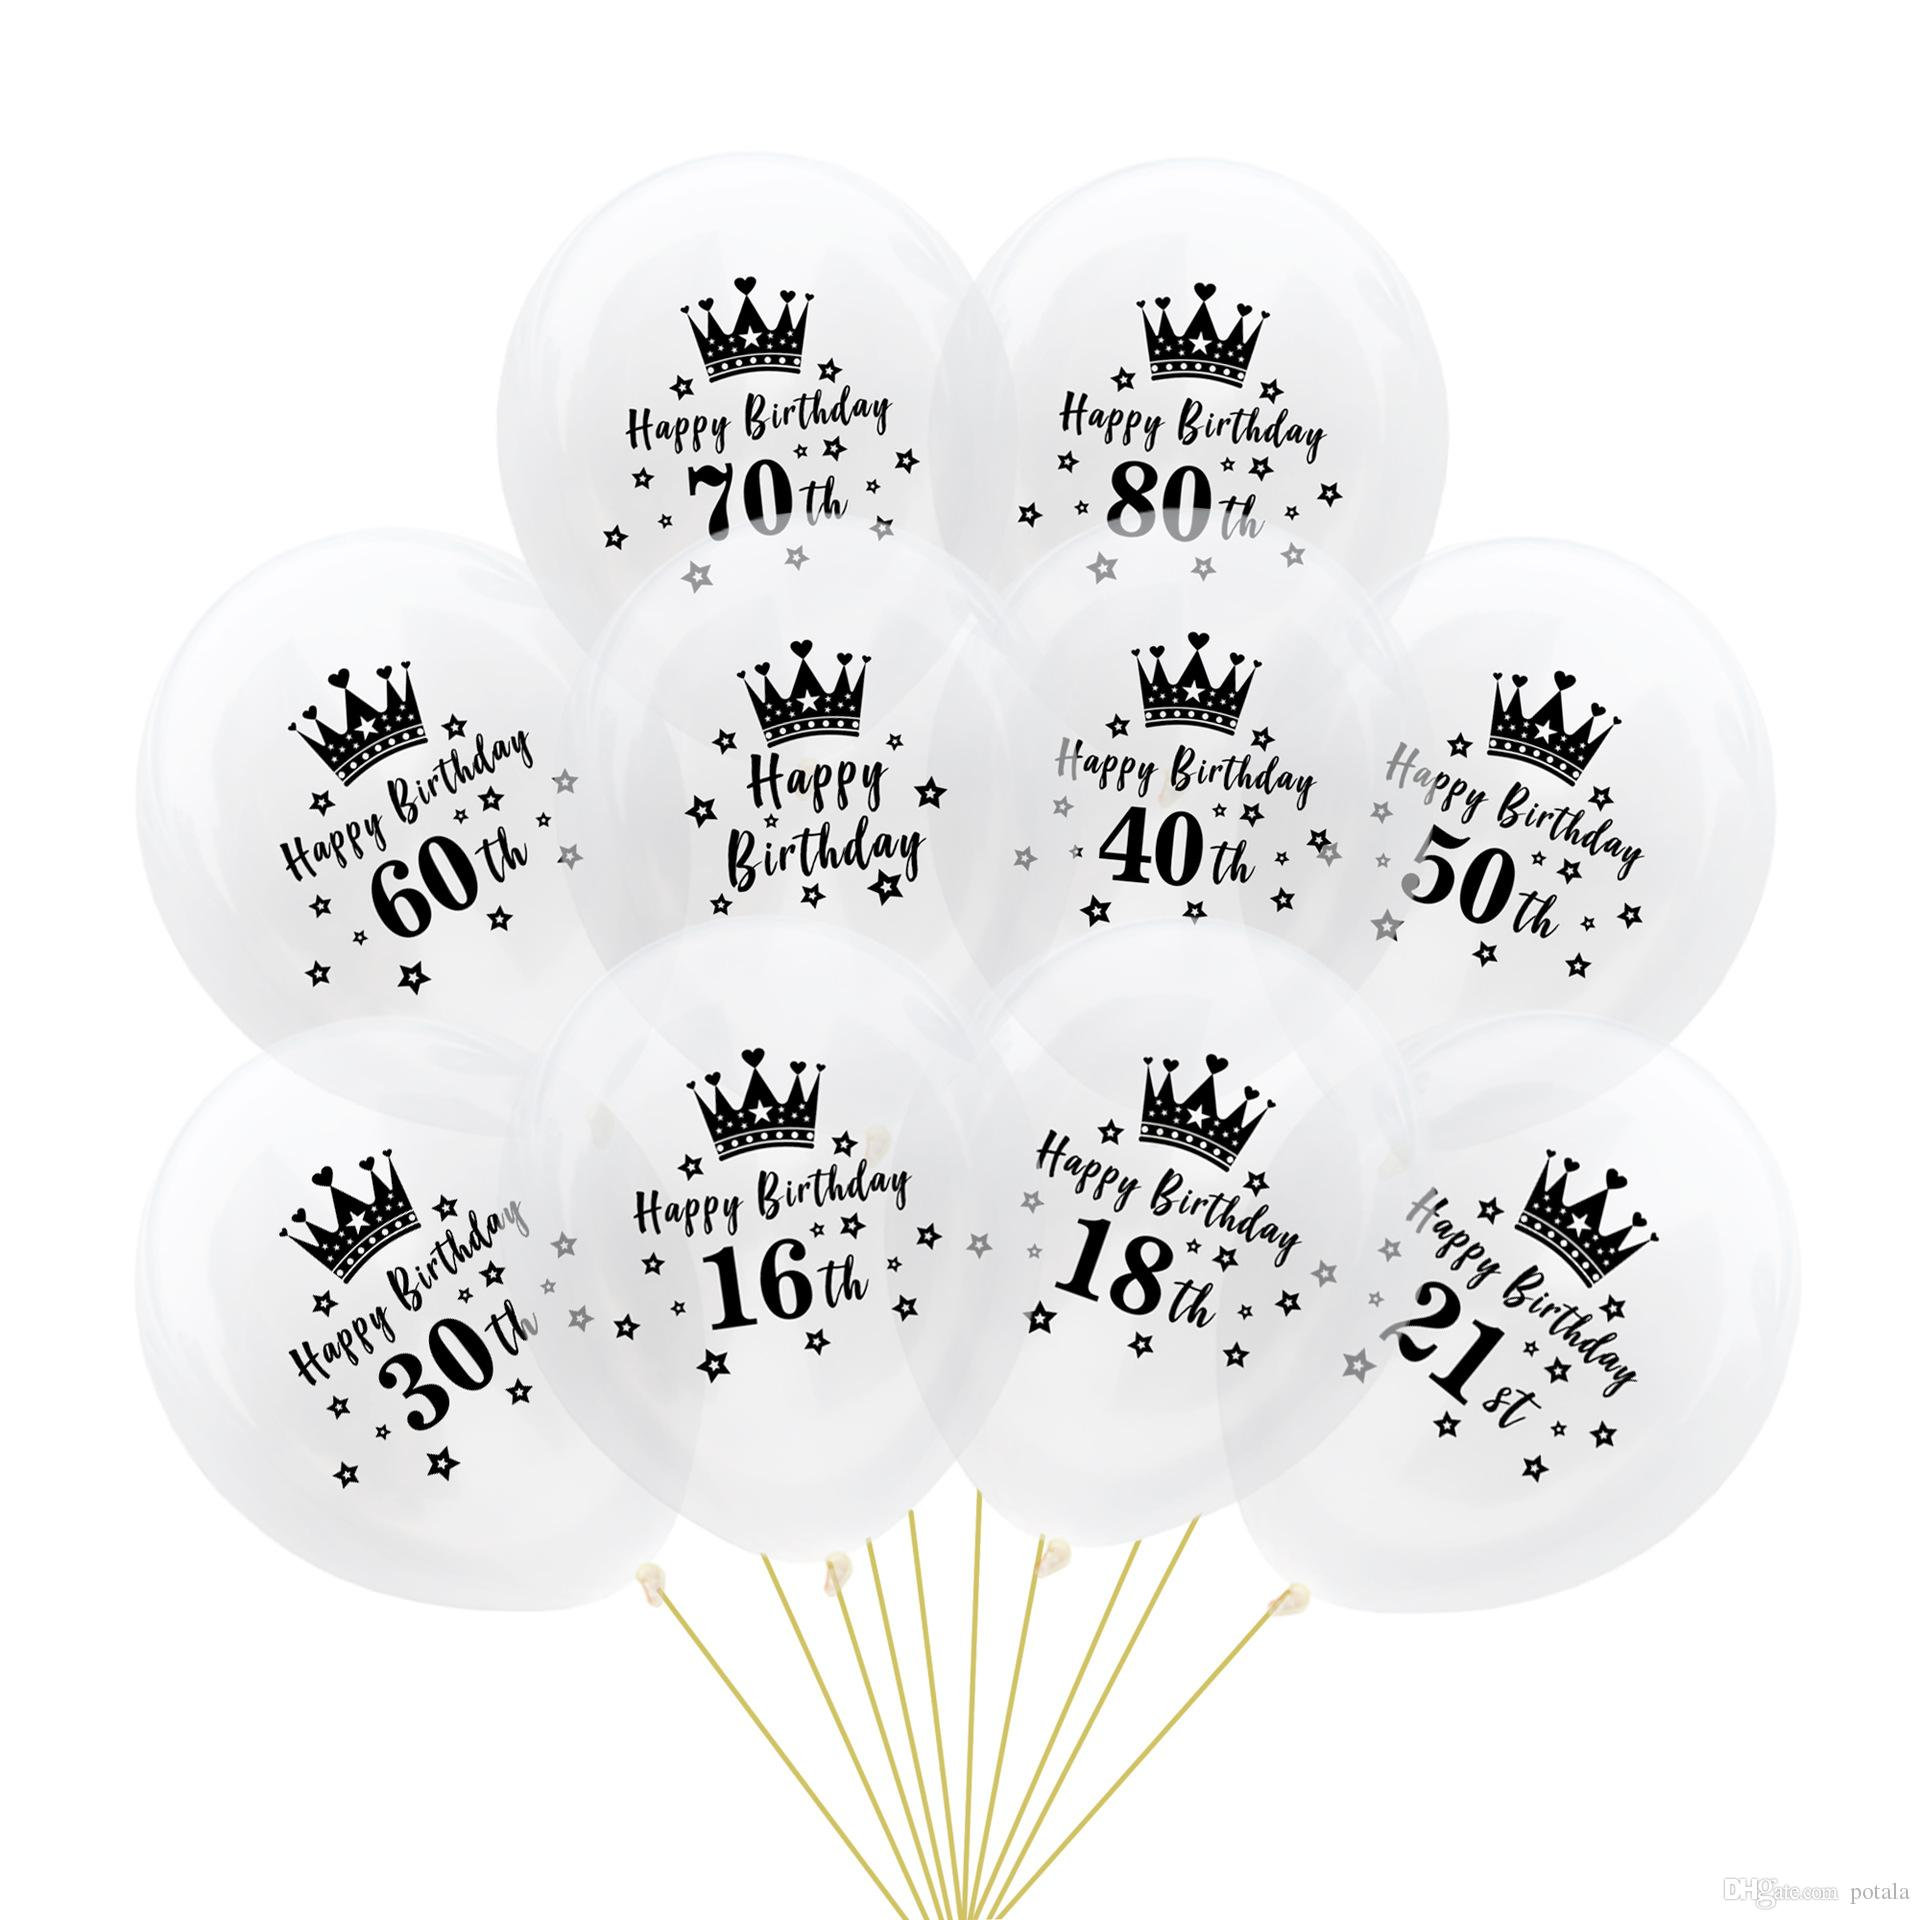 12 Black Crown Balloons 28g Thick Number Inflatable Latex Birthday Ballons Party Decor Palloncini Wedding Xmas Christmas Halloween Gifts Helium Balloon